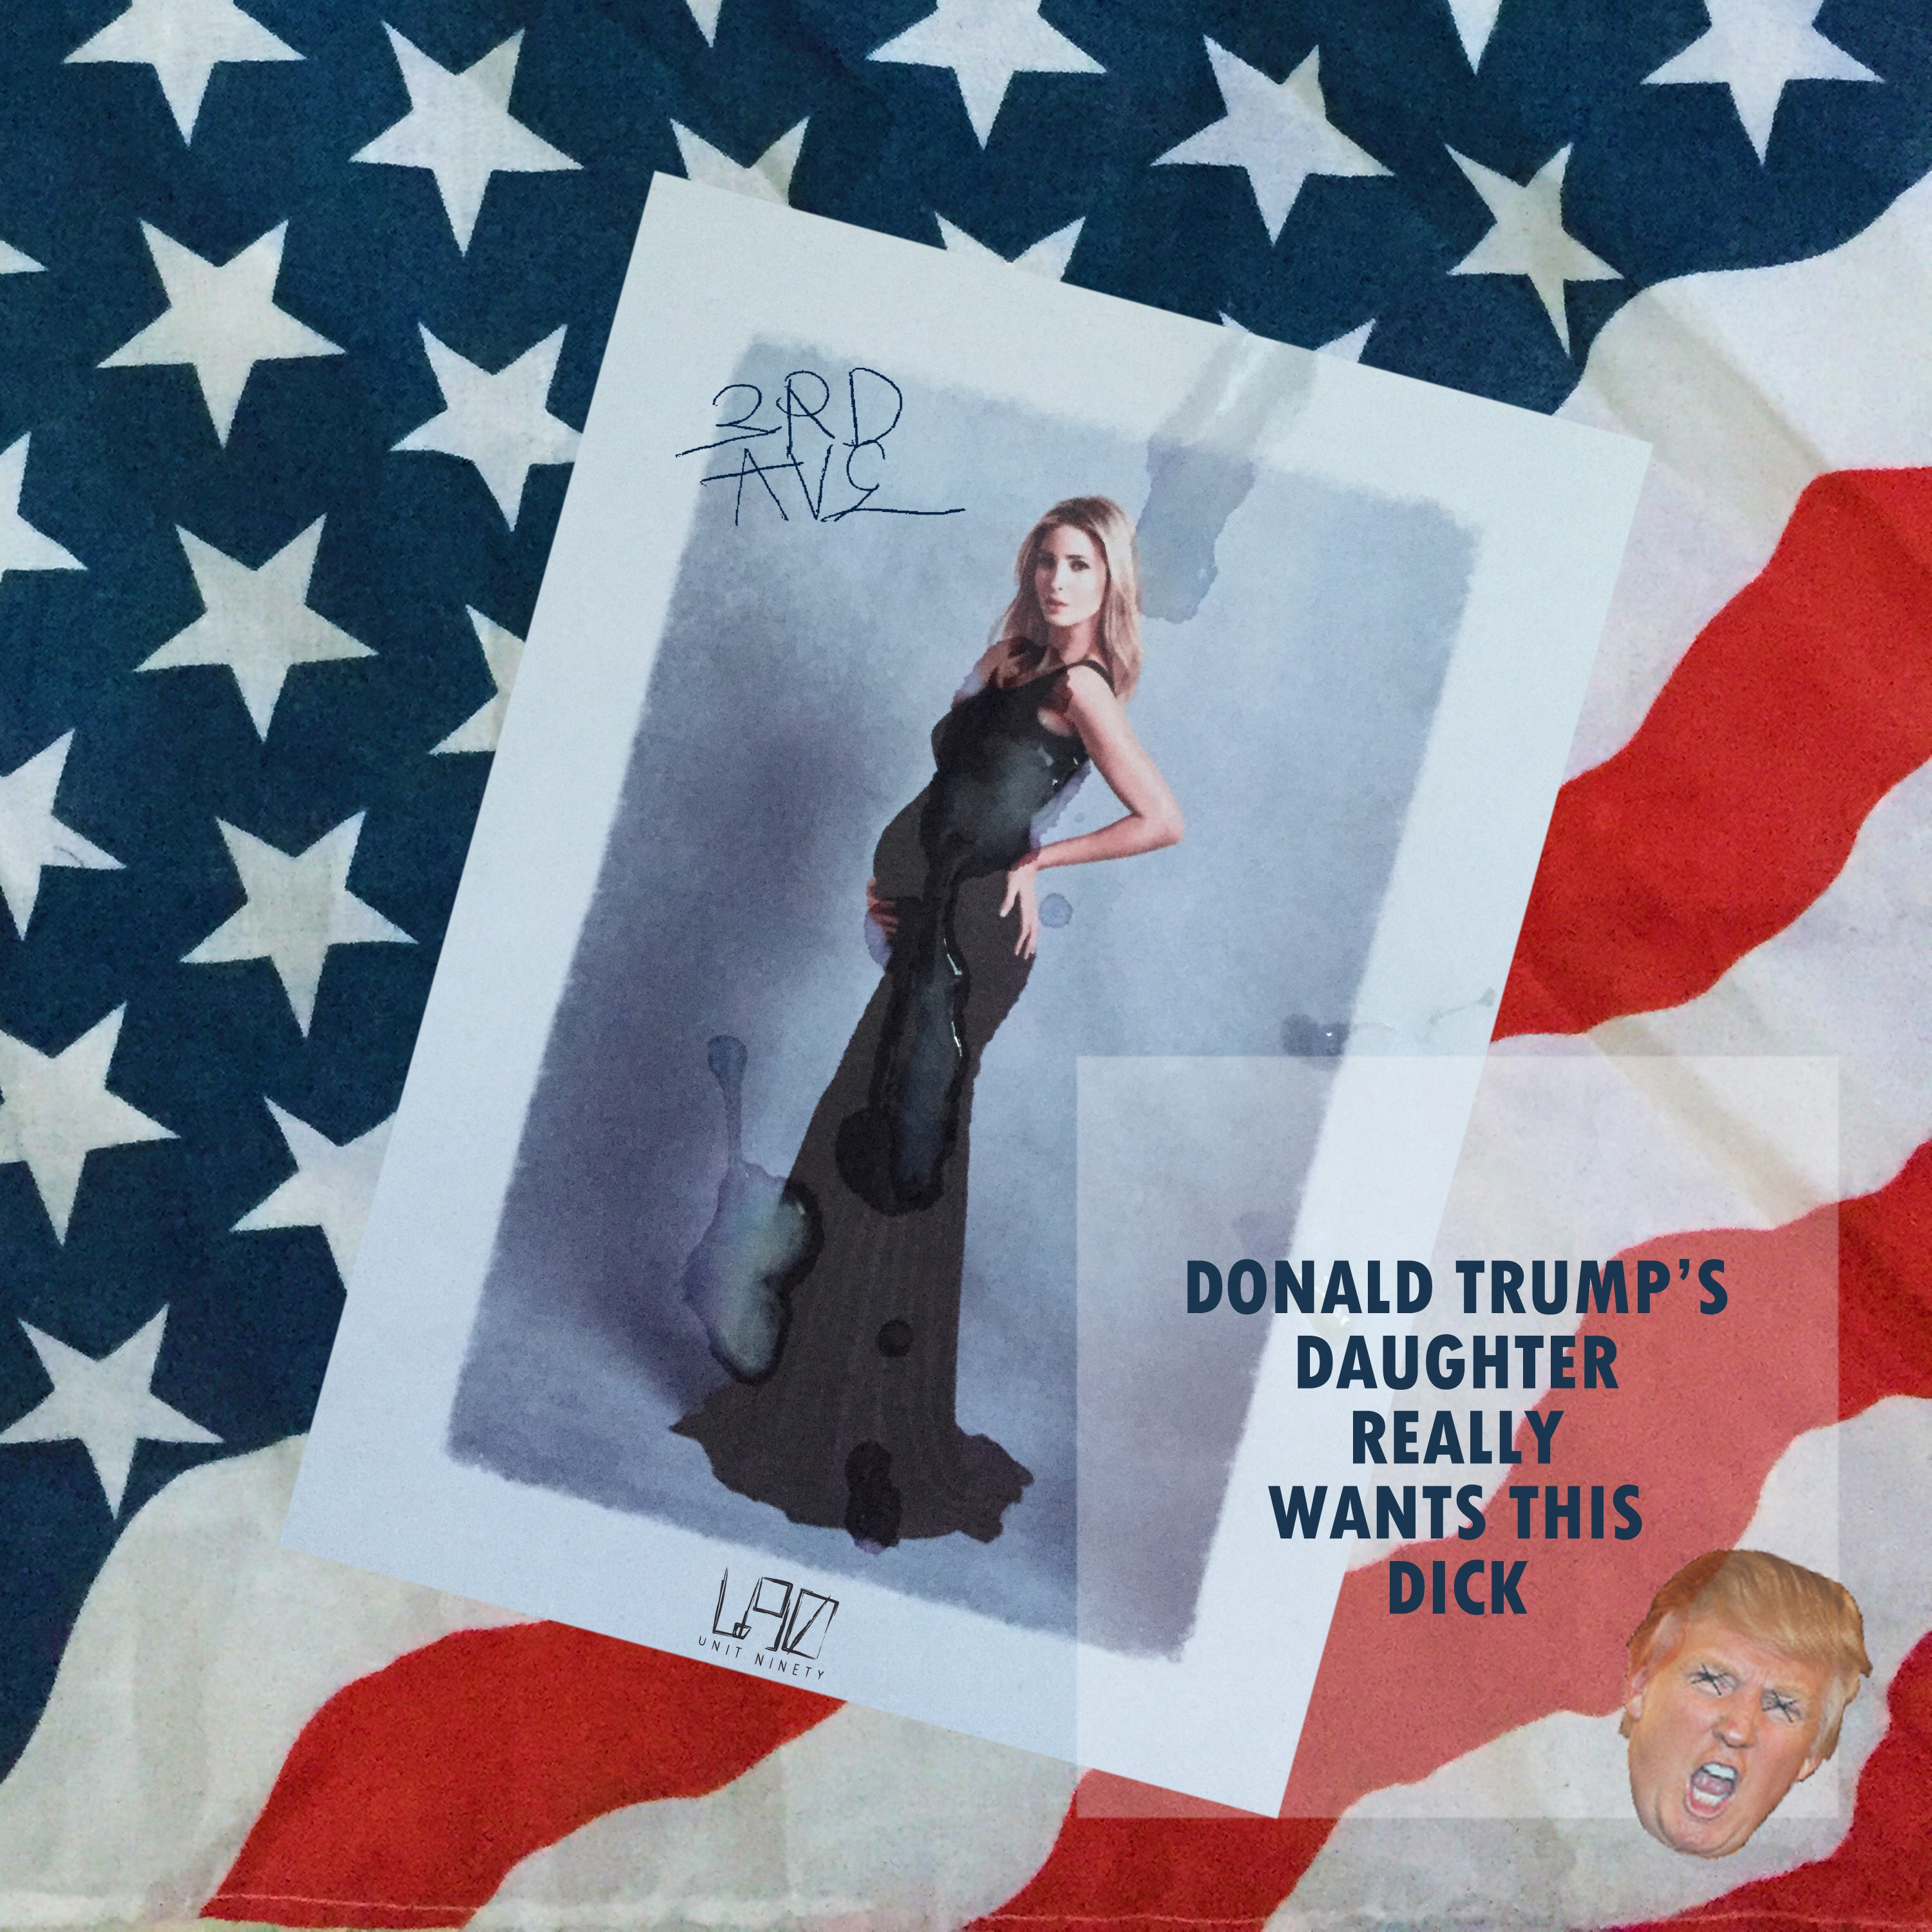 """3rd Ave's """"DONALD TRUMP'S DAUGHTER REALLY WANT THIS DICK"""" Prod. SalTreze"""